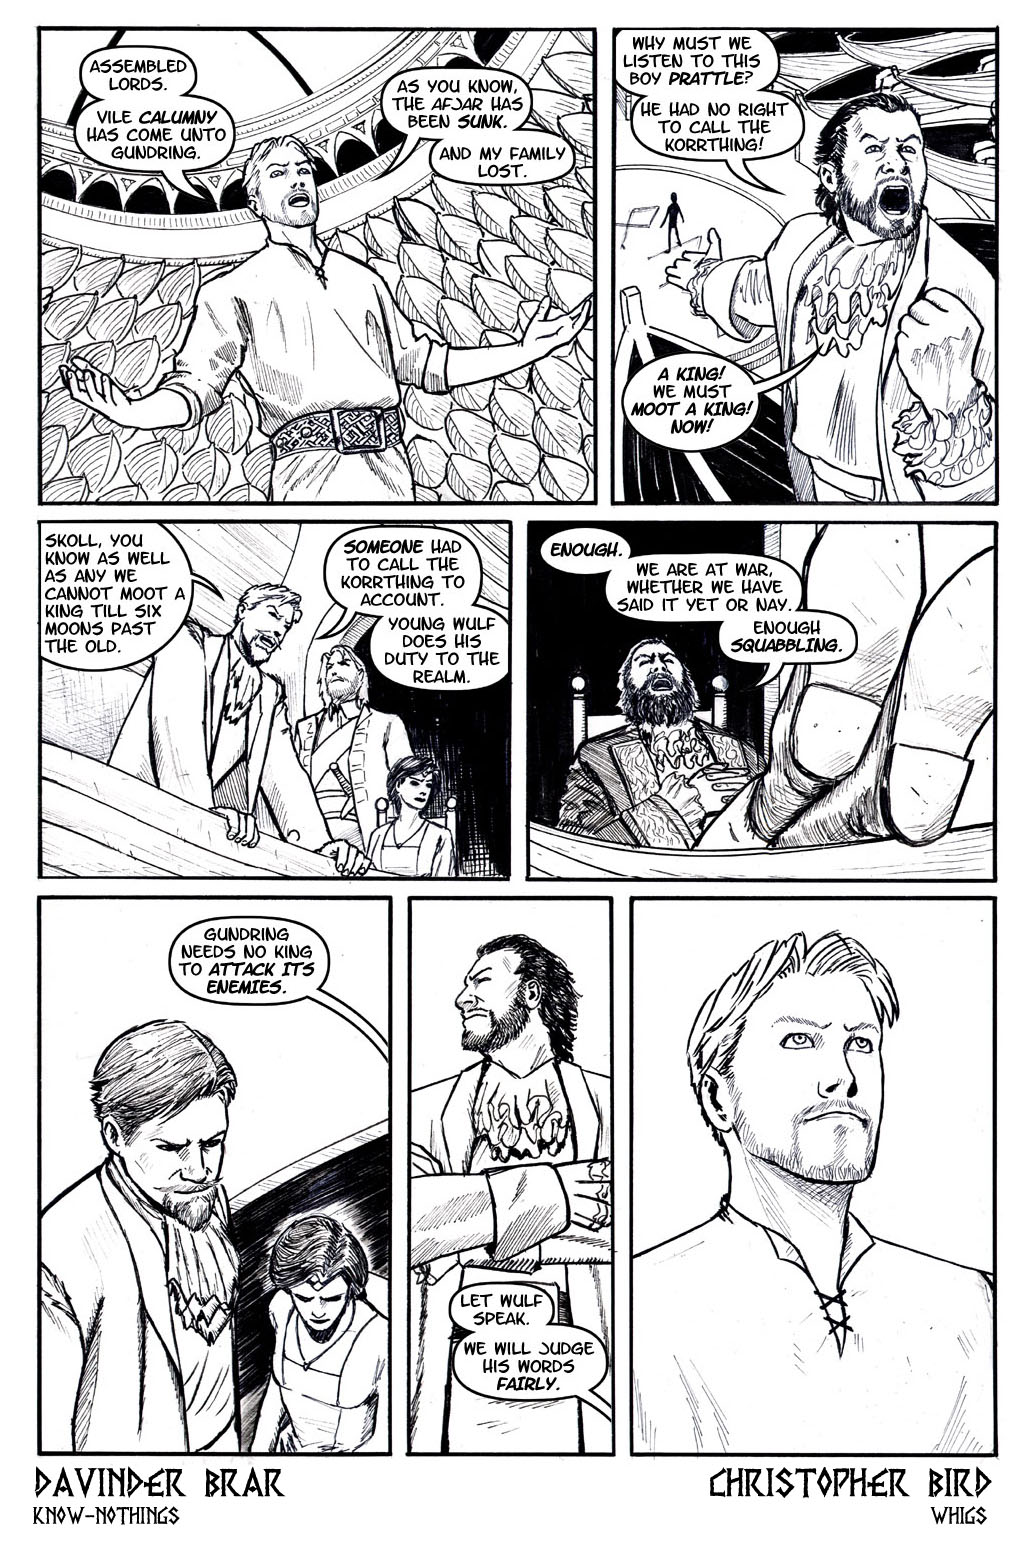 Book 3, page 2